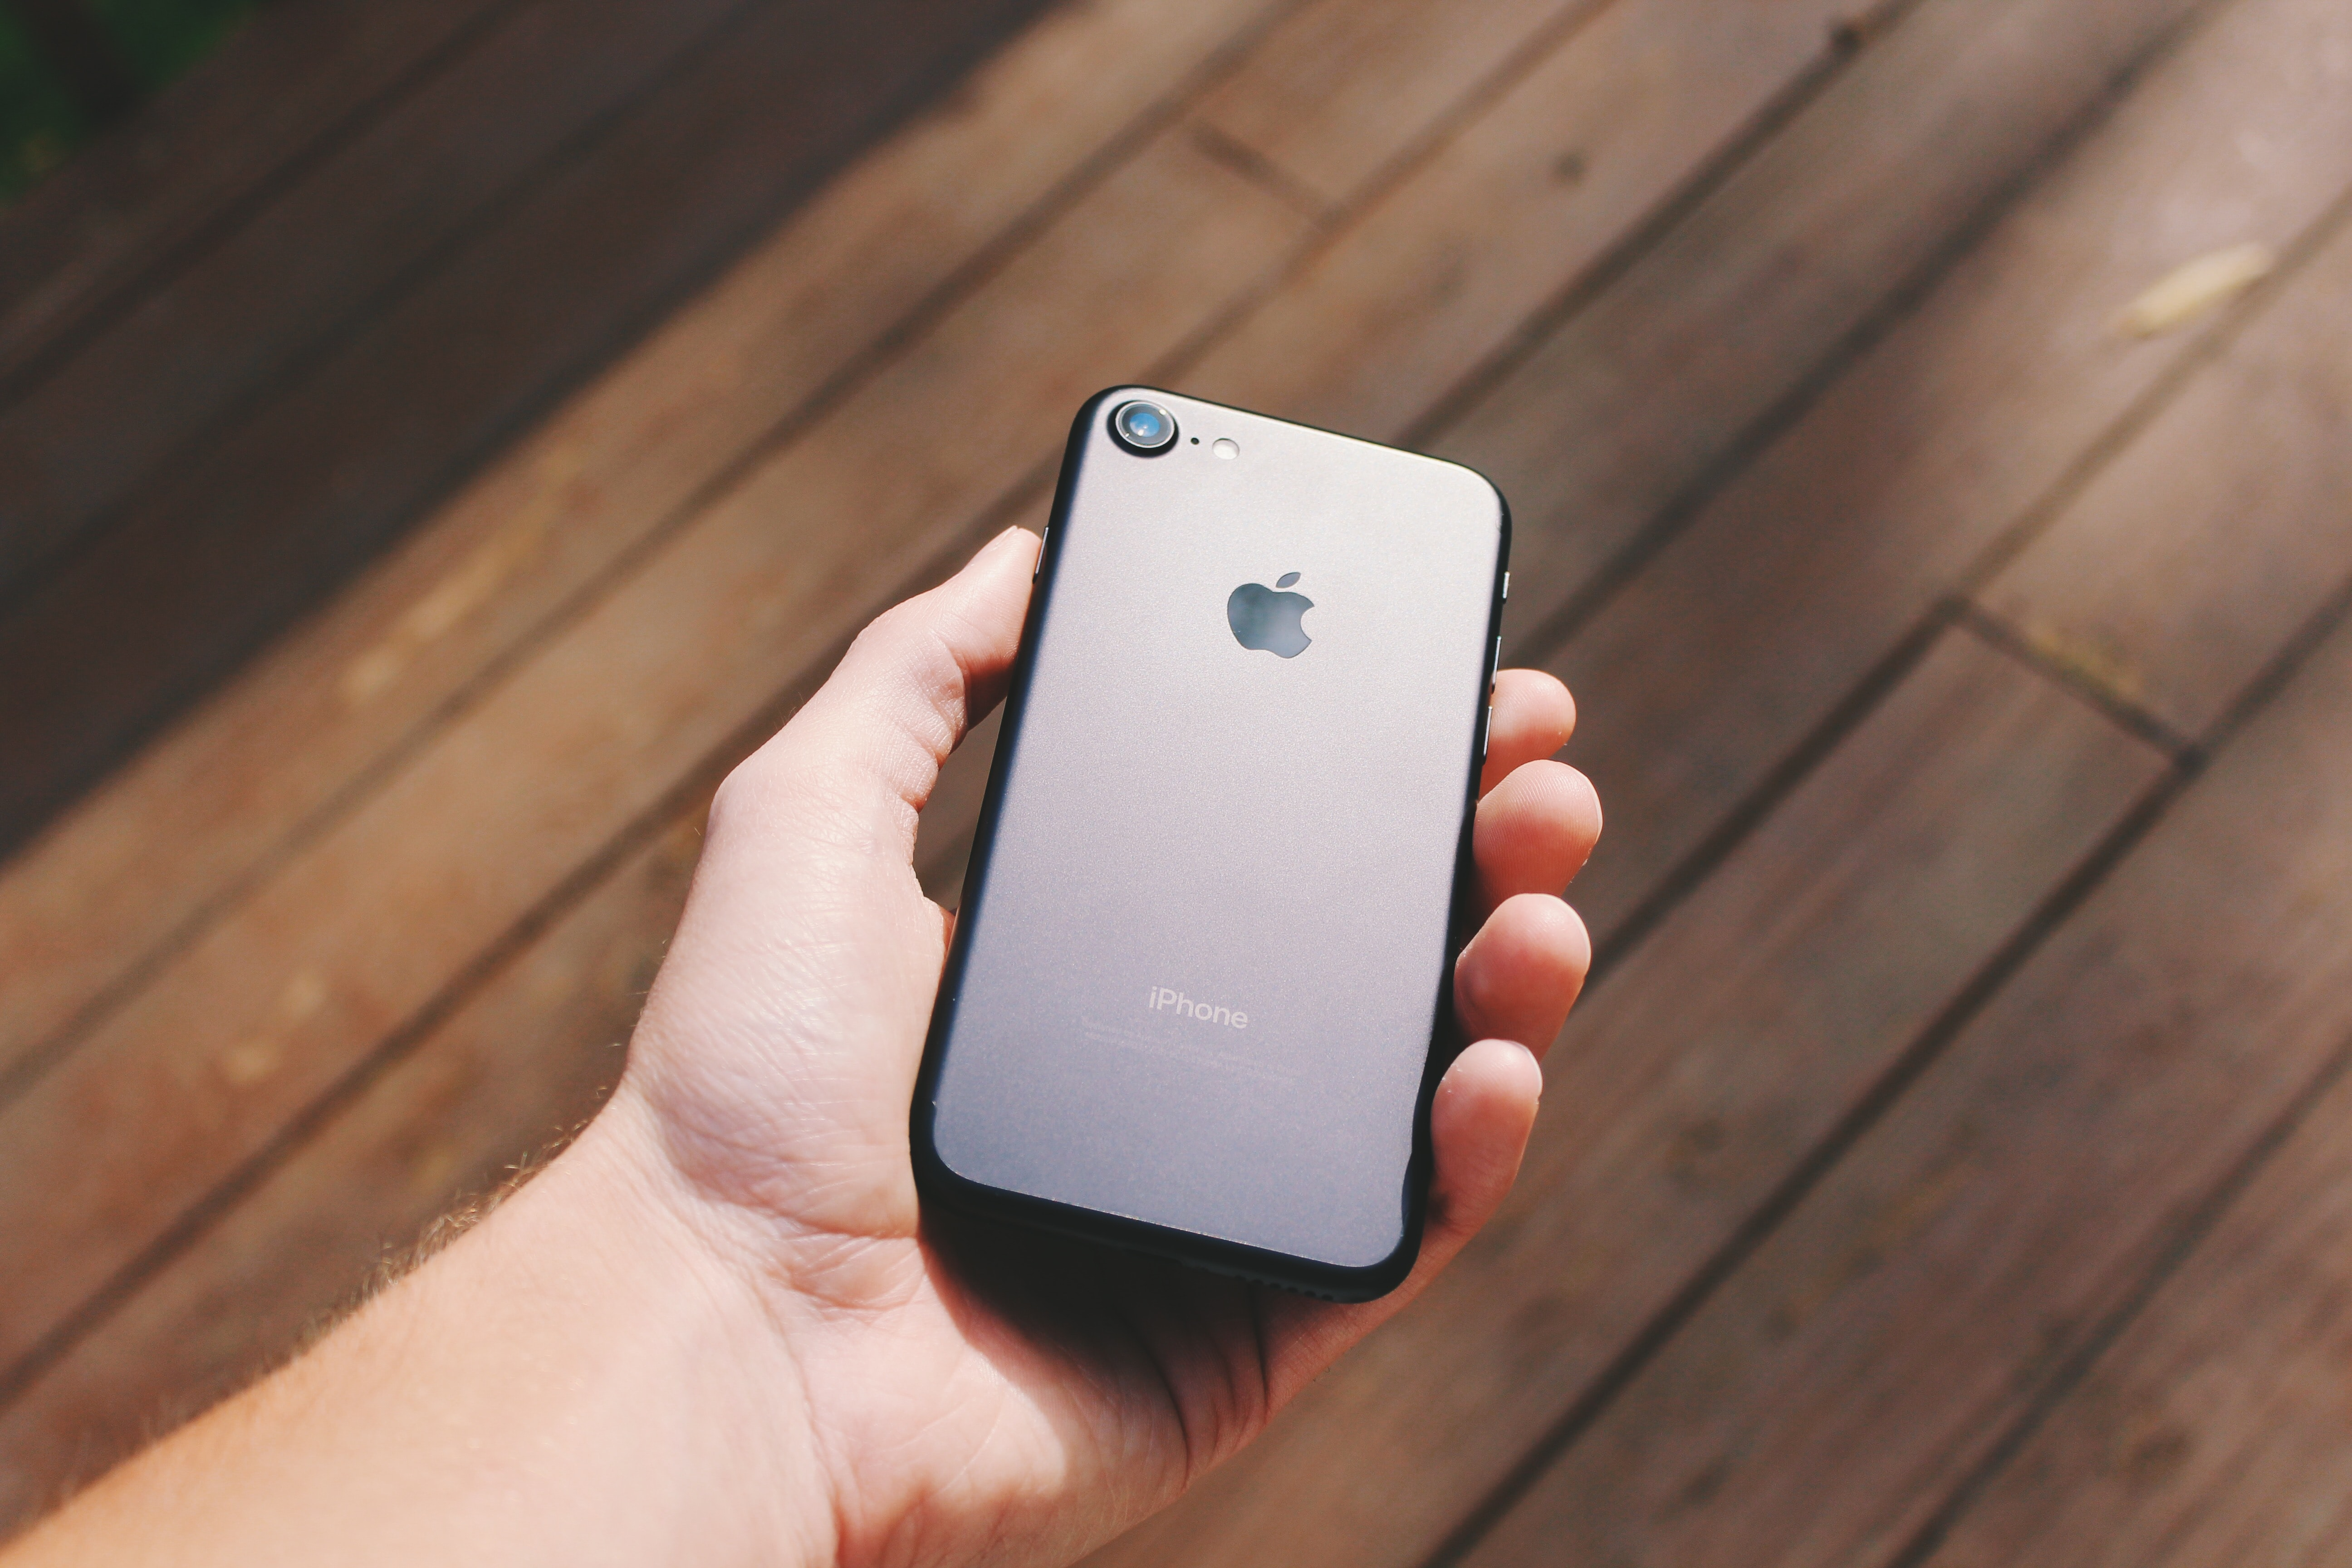 person holding jet black iPhone 7